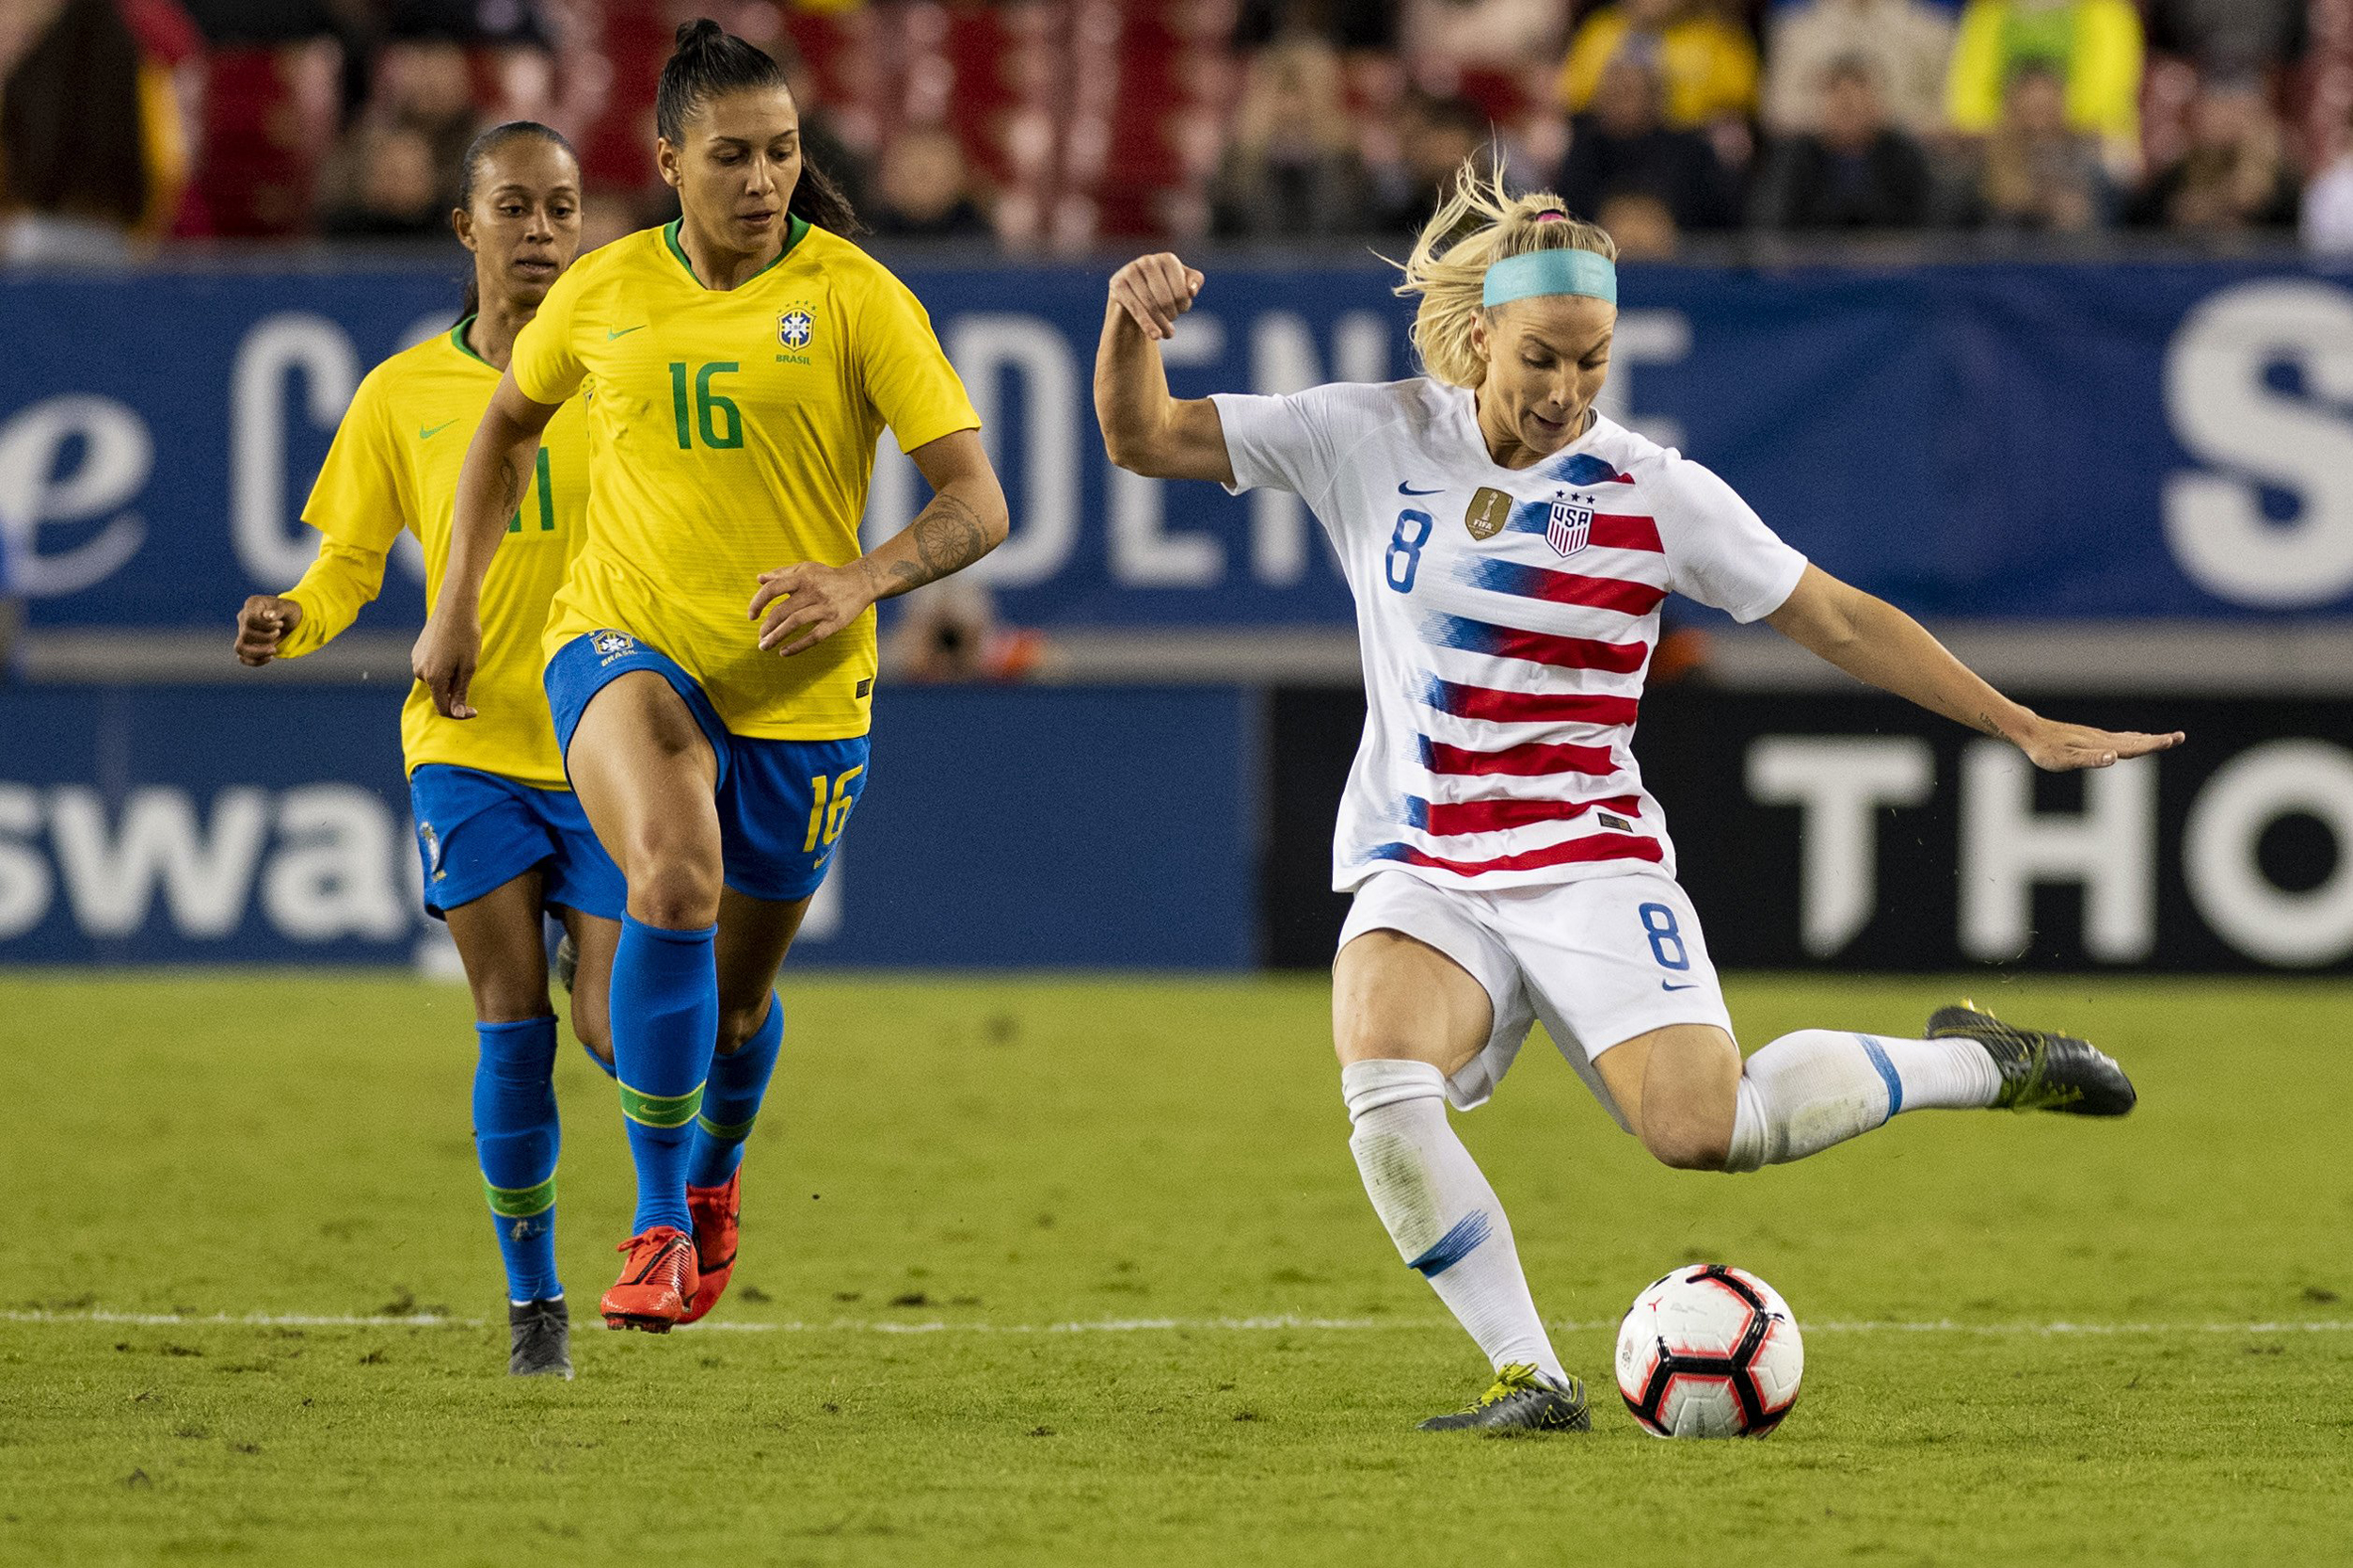 FIFA will require natural grass fields at 2023 Women's World Cup